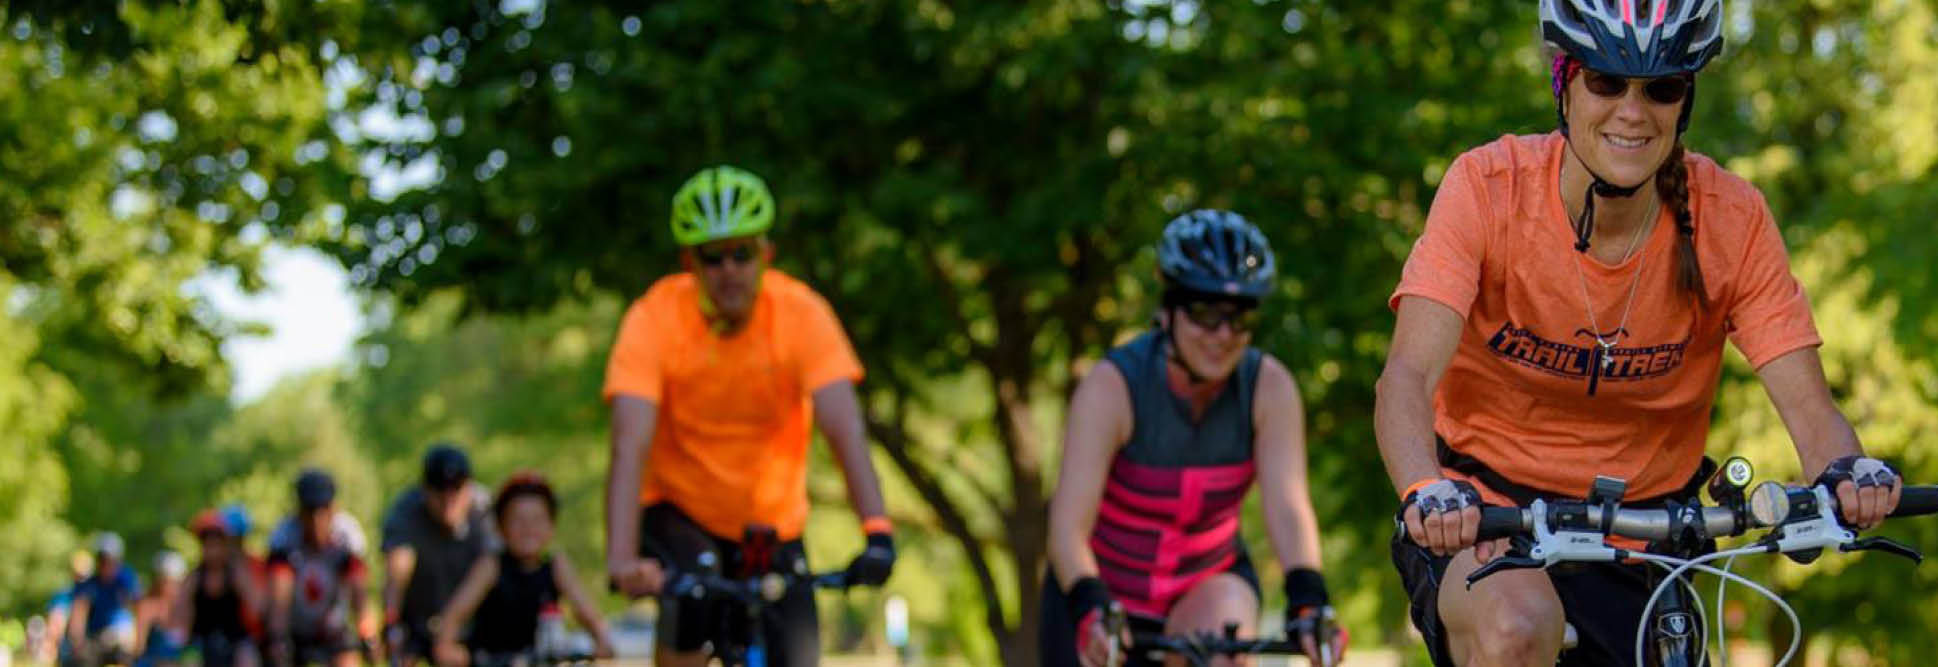 Come Ride Trail Trek 2019 - Sunday, June 23